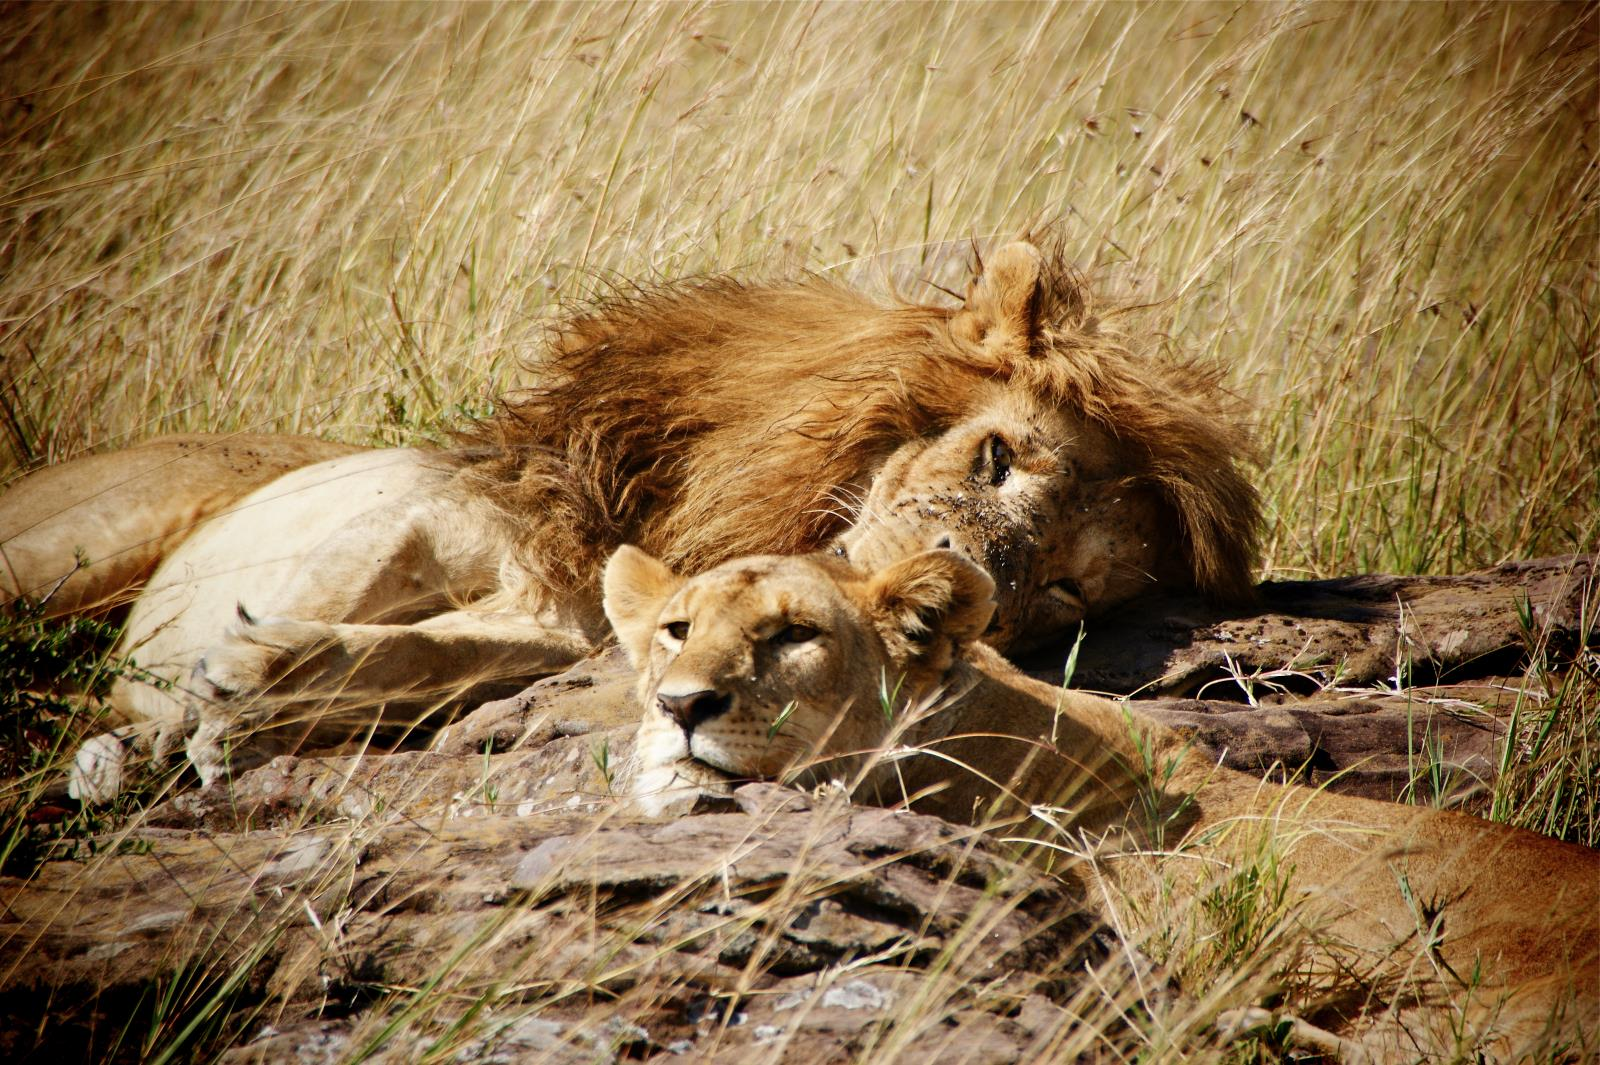 Safari and Lion Encounters in the Masai Mara, Kenya